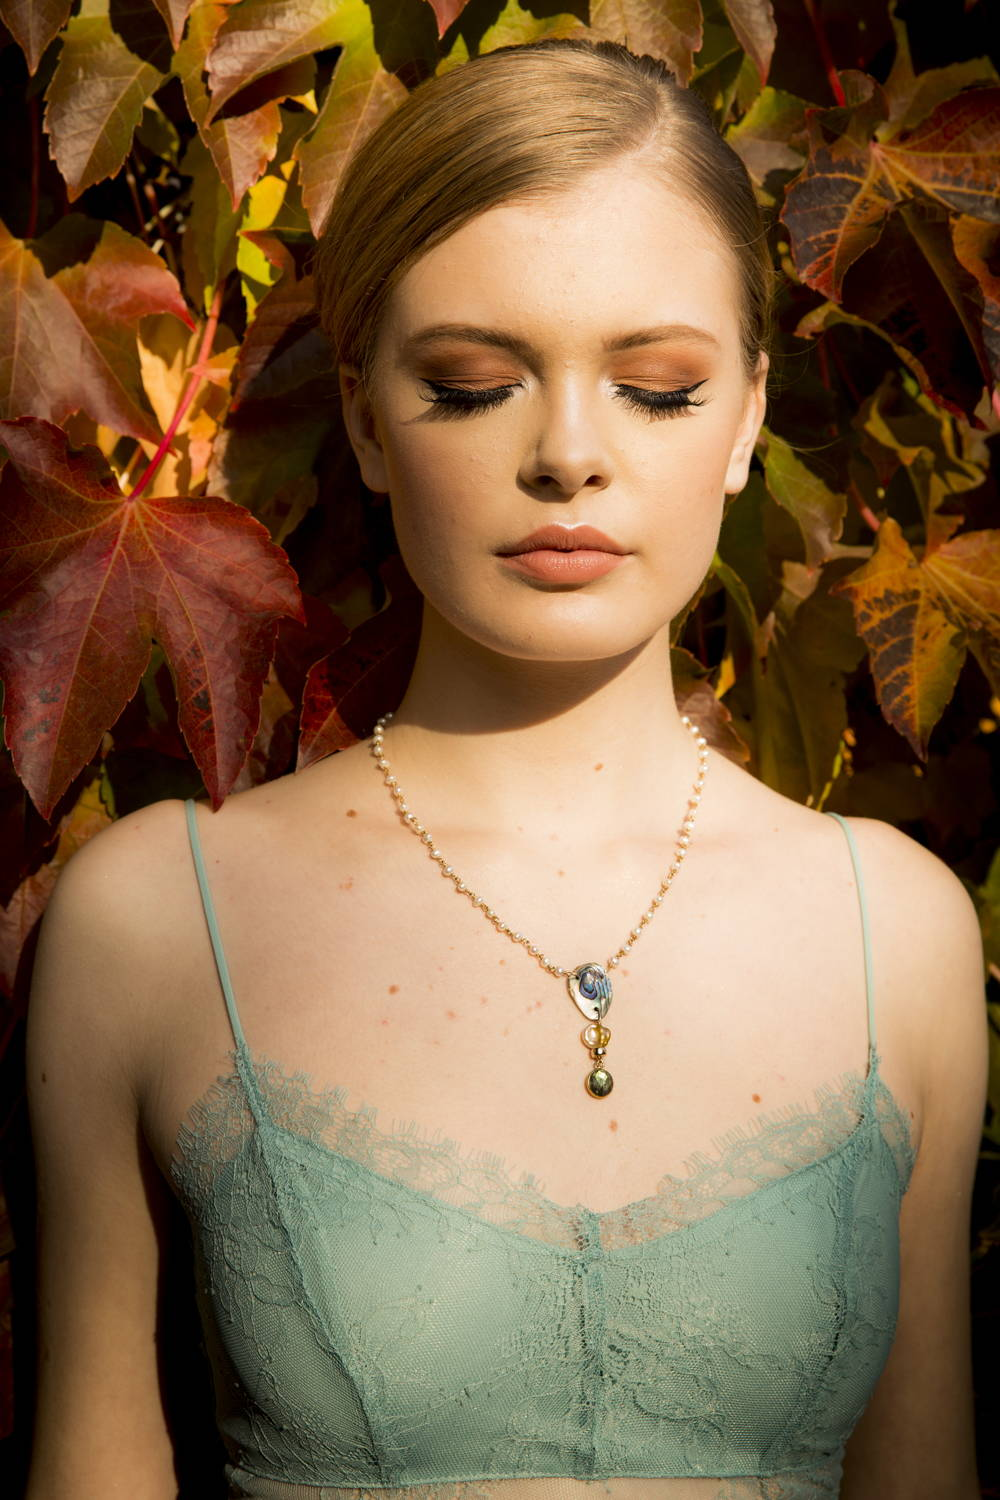 Siren Style Number Two: One of our sirens models The Burning Flame Pearl Necklace, a sparkly handmade designer pearl and gemstone siren necklace. A one-of-a-kind pendant featuring flashing labradorite, iridescent abalone shell and pearl hangs from a delicate white pearl chain.